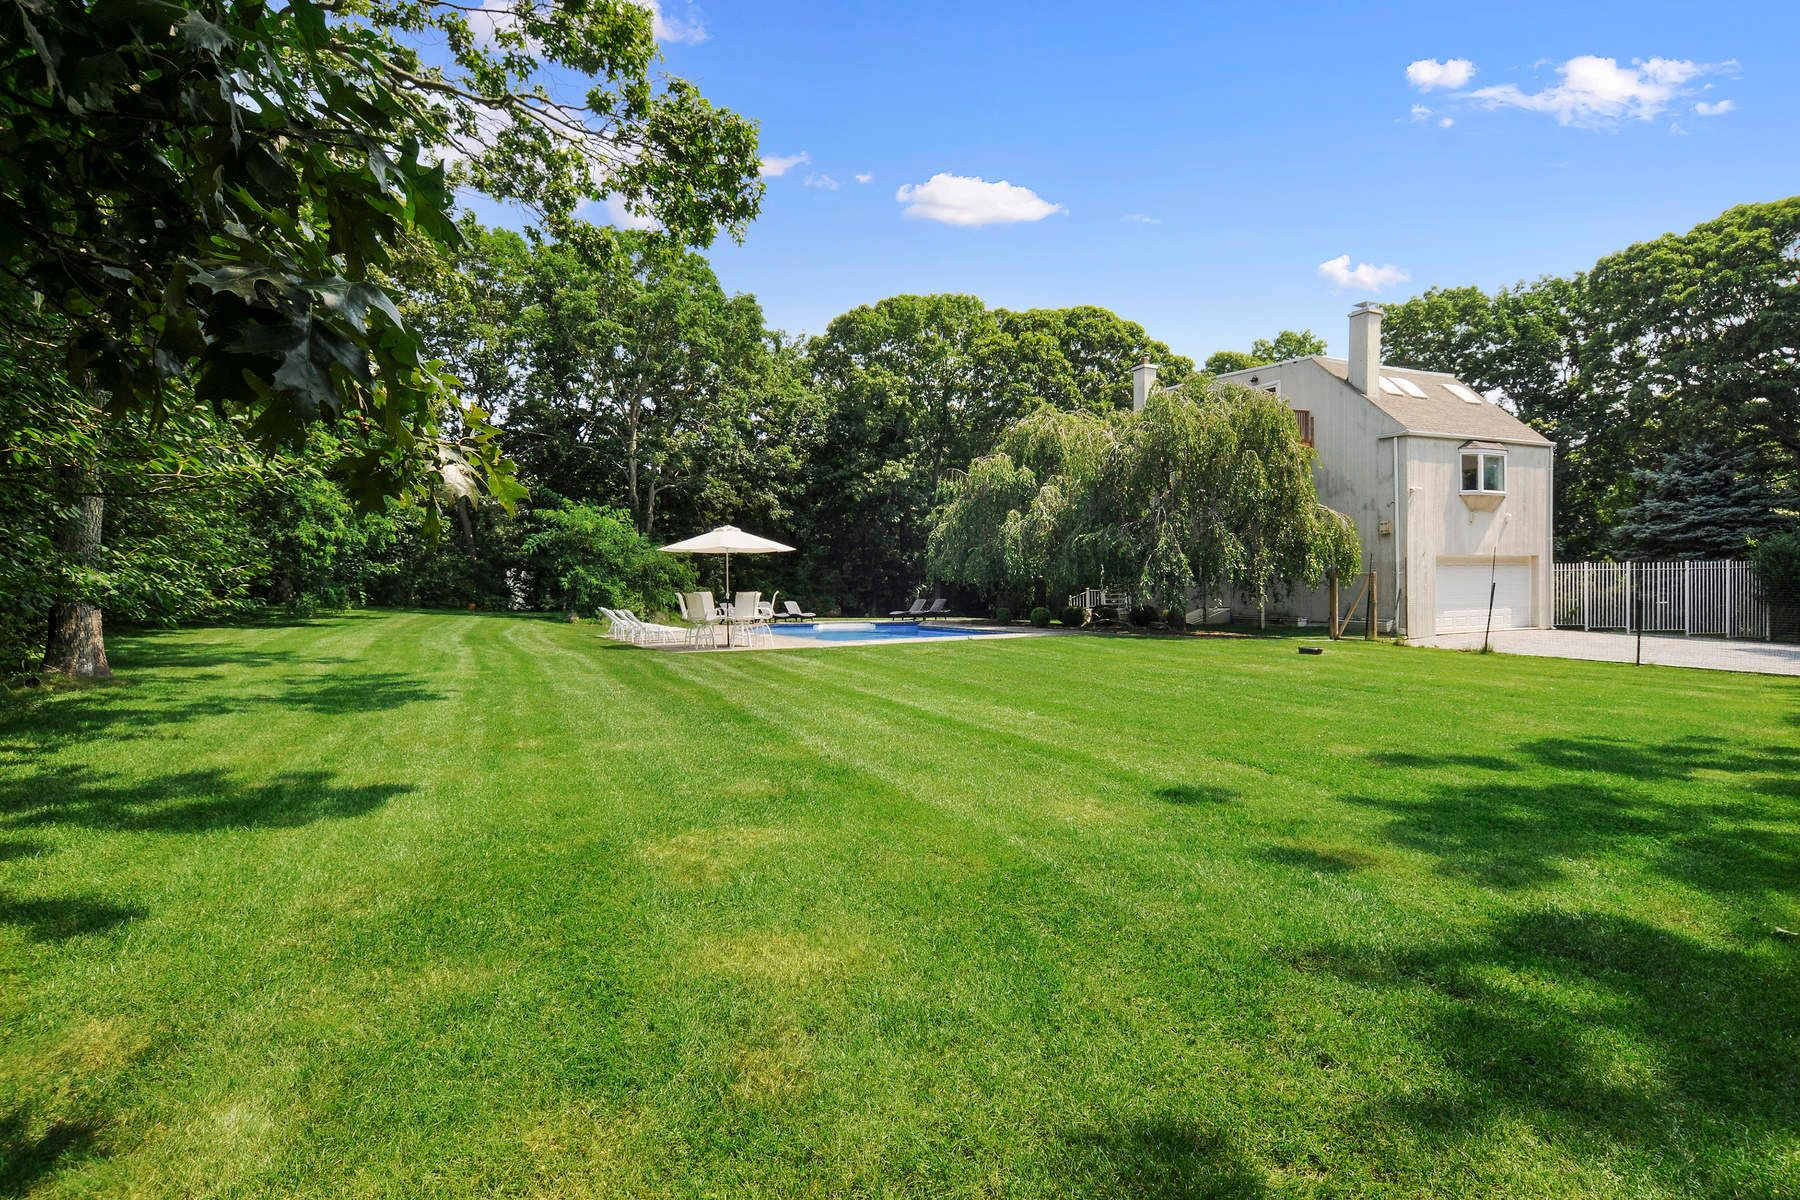 Single Family Home for Rent at CHIC CONTEMPORARY IN NORTHWEST WOODS East Hampton, New York 11937 United States